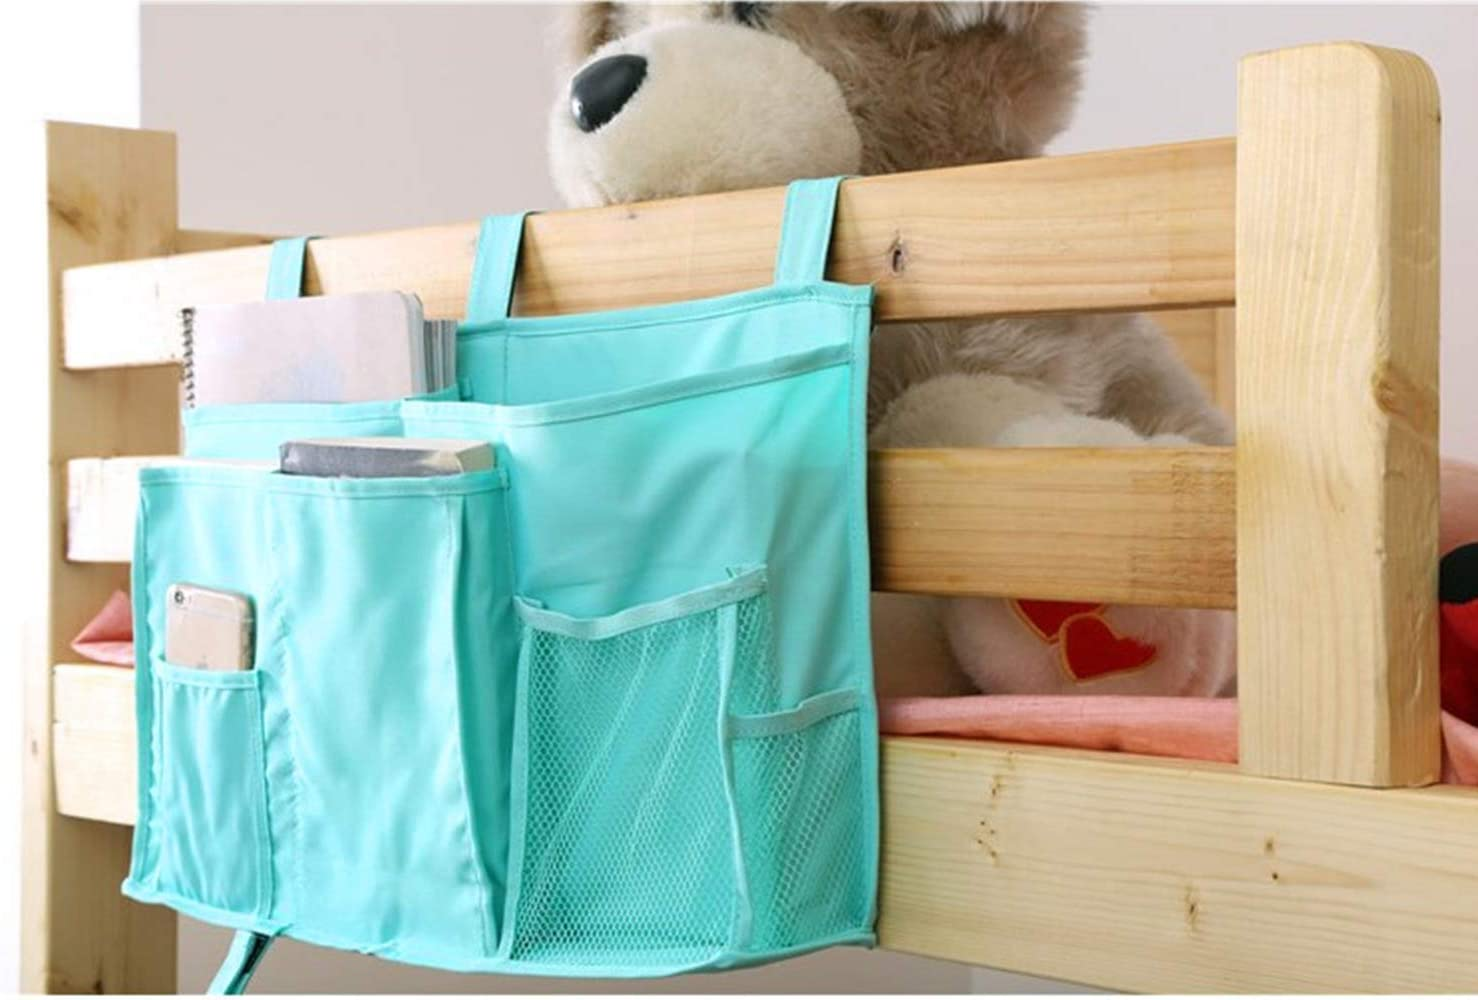 Max 60% OFF JINTN Arlington Mall Bedside Caddy Bed Organizer Noteb Hanging for Storage Bags